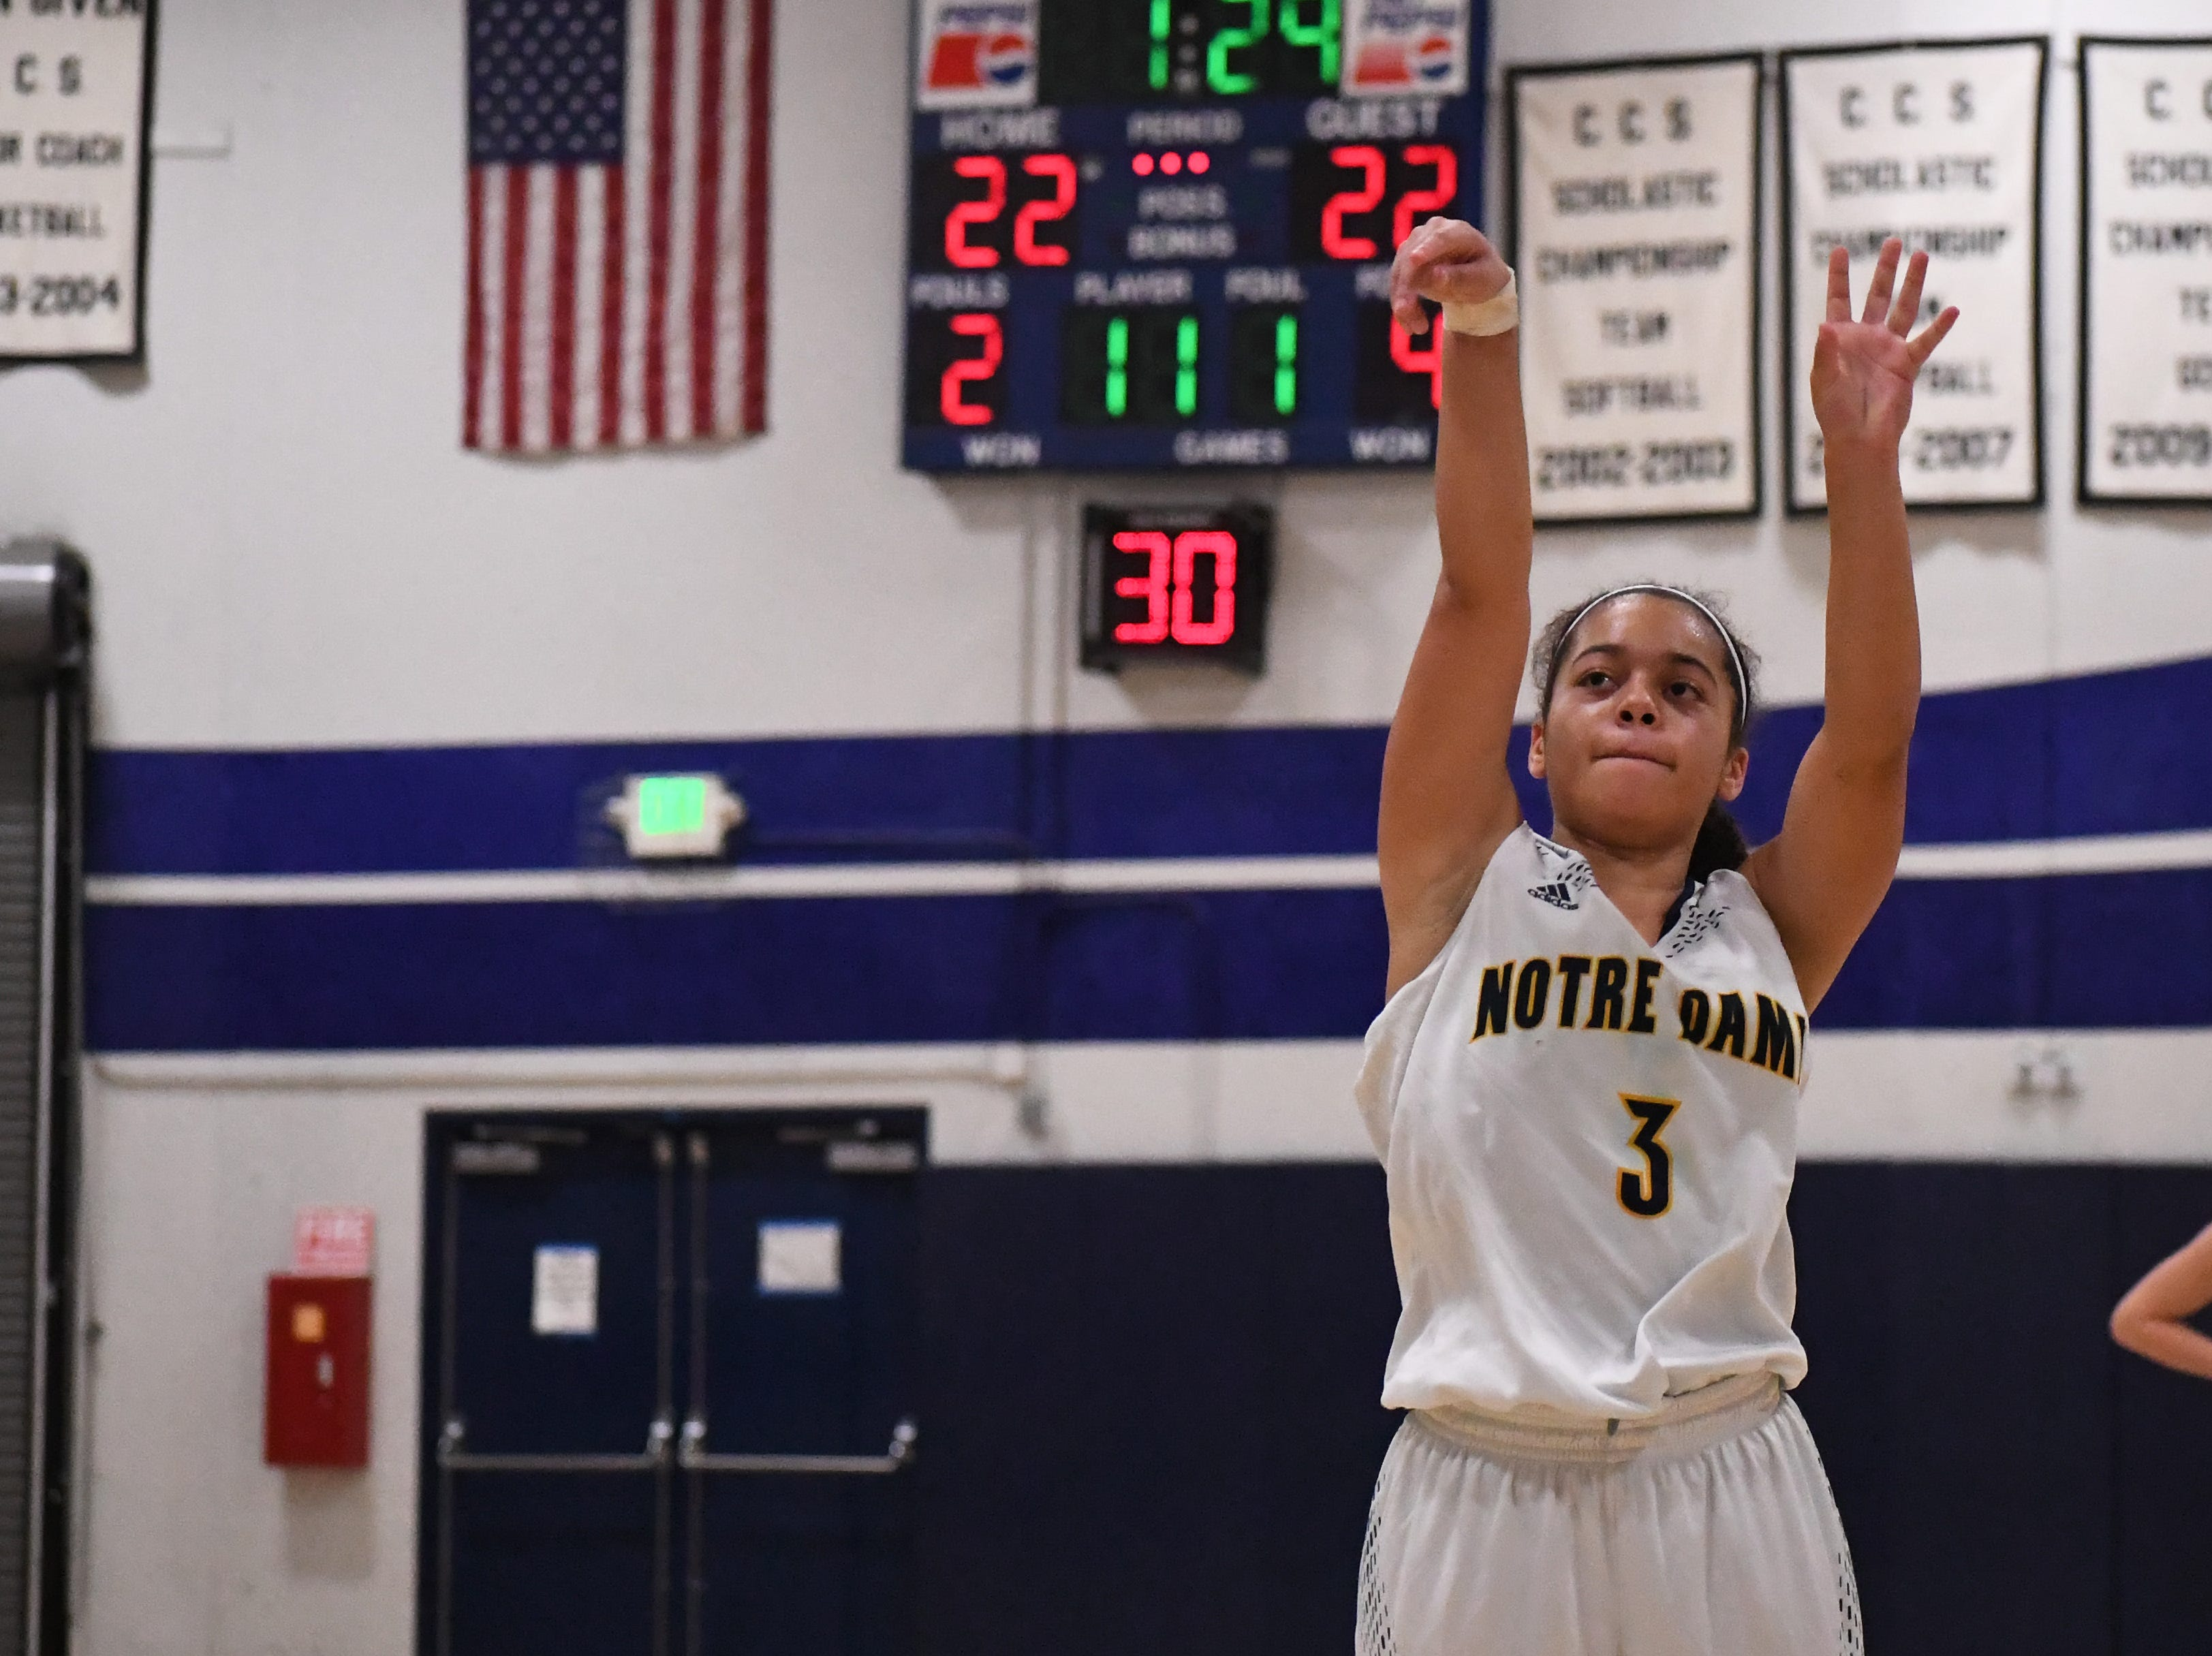 Notre Dame's Mariah Schlapfer (3) shoots a free throw in the third quarter.